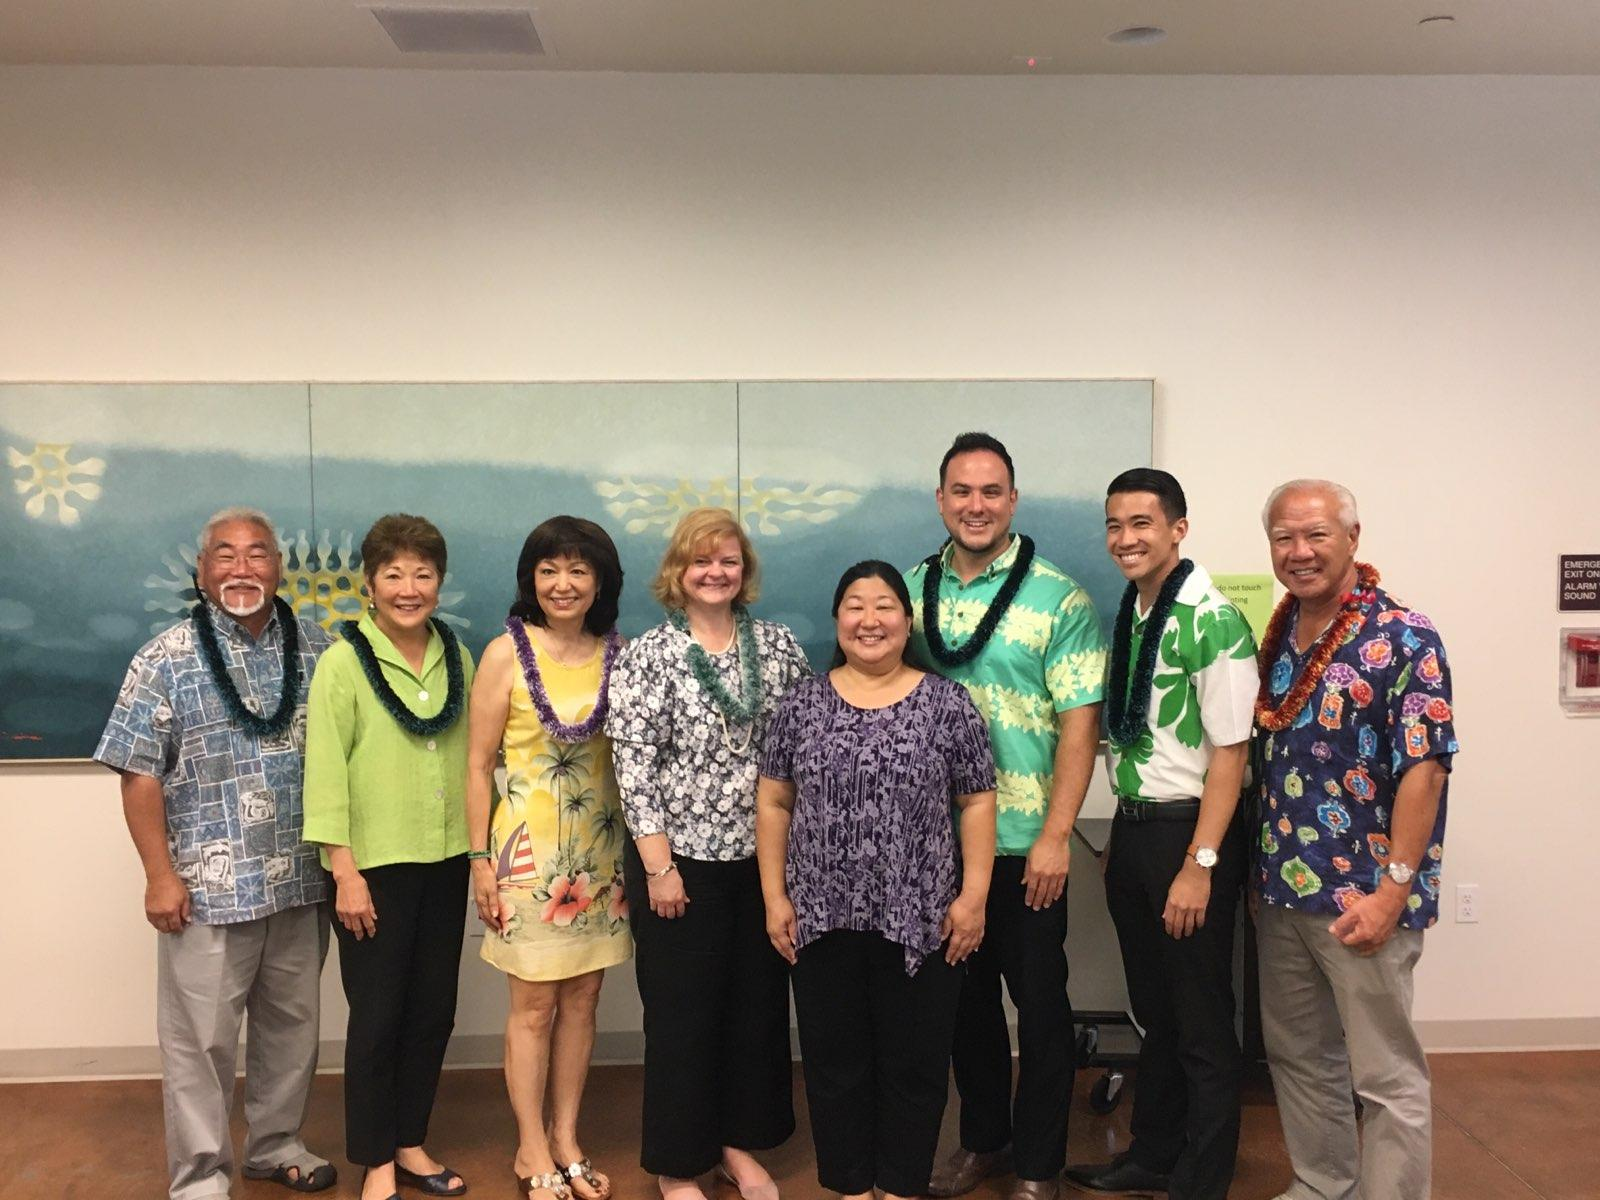 Aiea Library 5th Anniversary